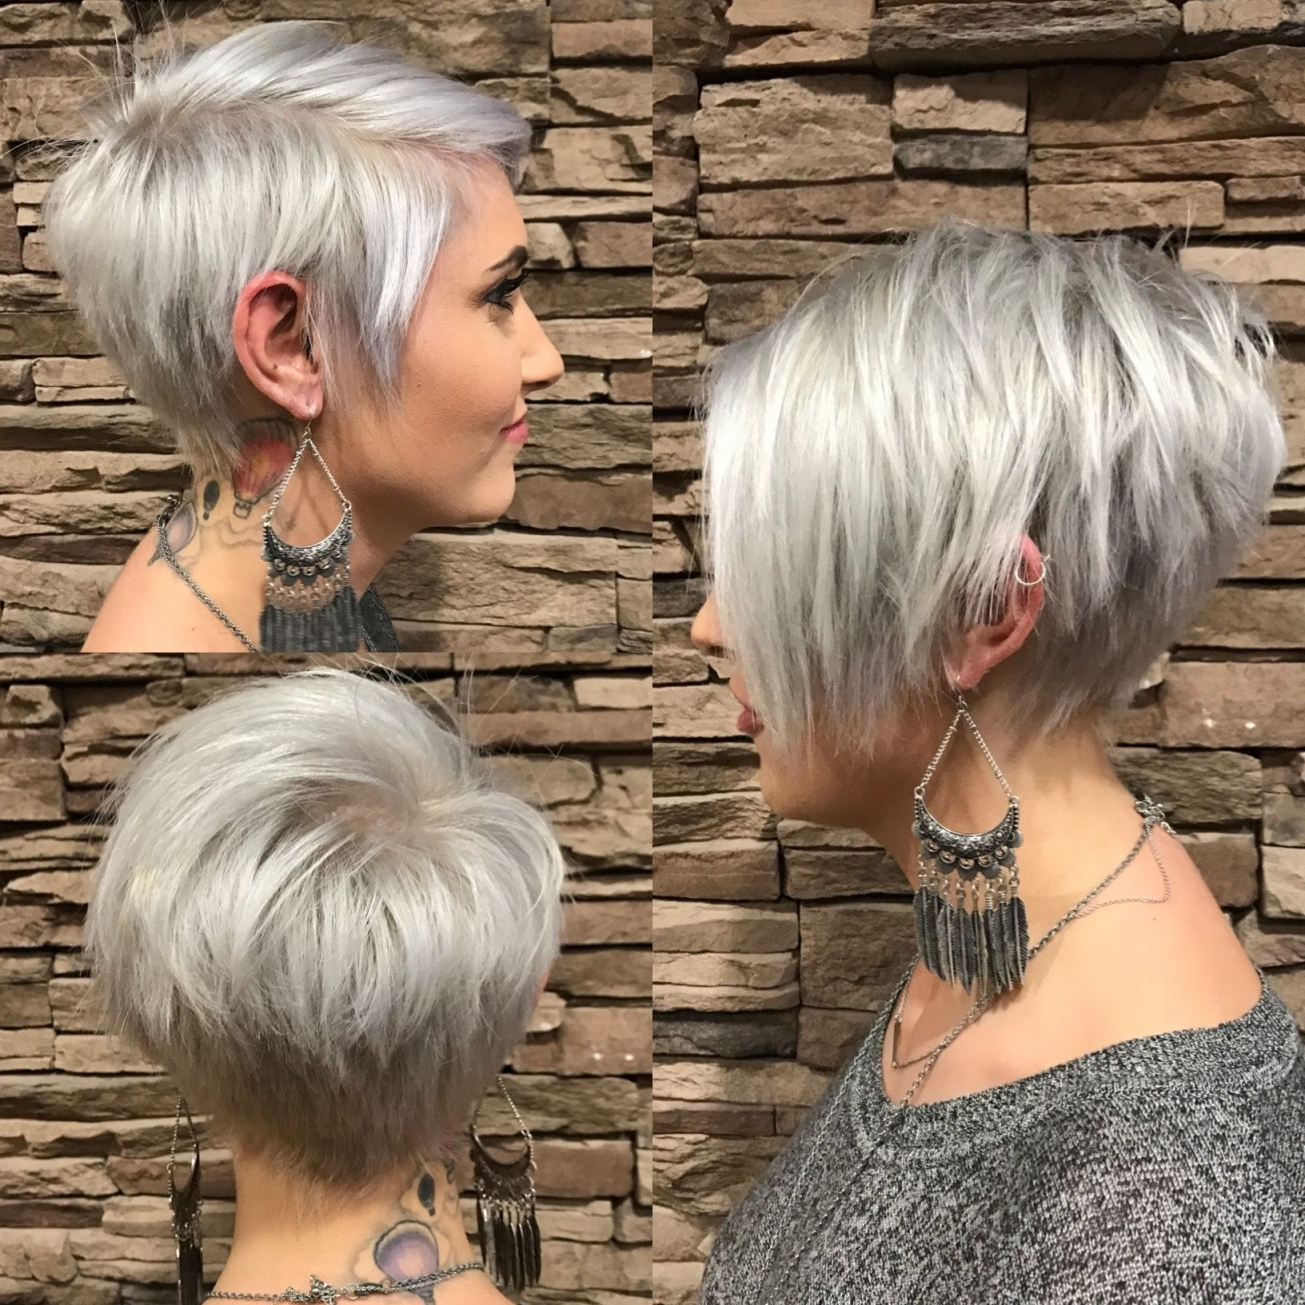 Asymmetrical Bob Short Hair Best Of Long Pixie With Bangs Silver Regarding Current Stacked Pixie Bob Hairstyles With Long Bangs (View 13 of 20)